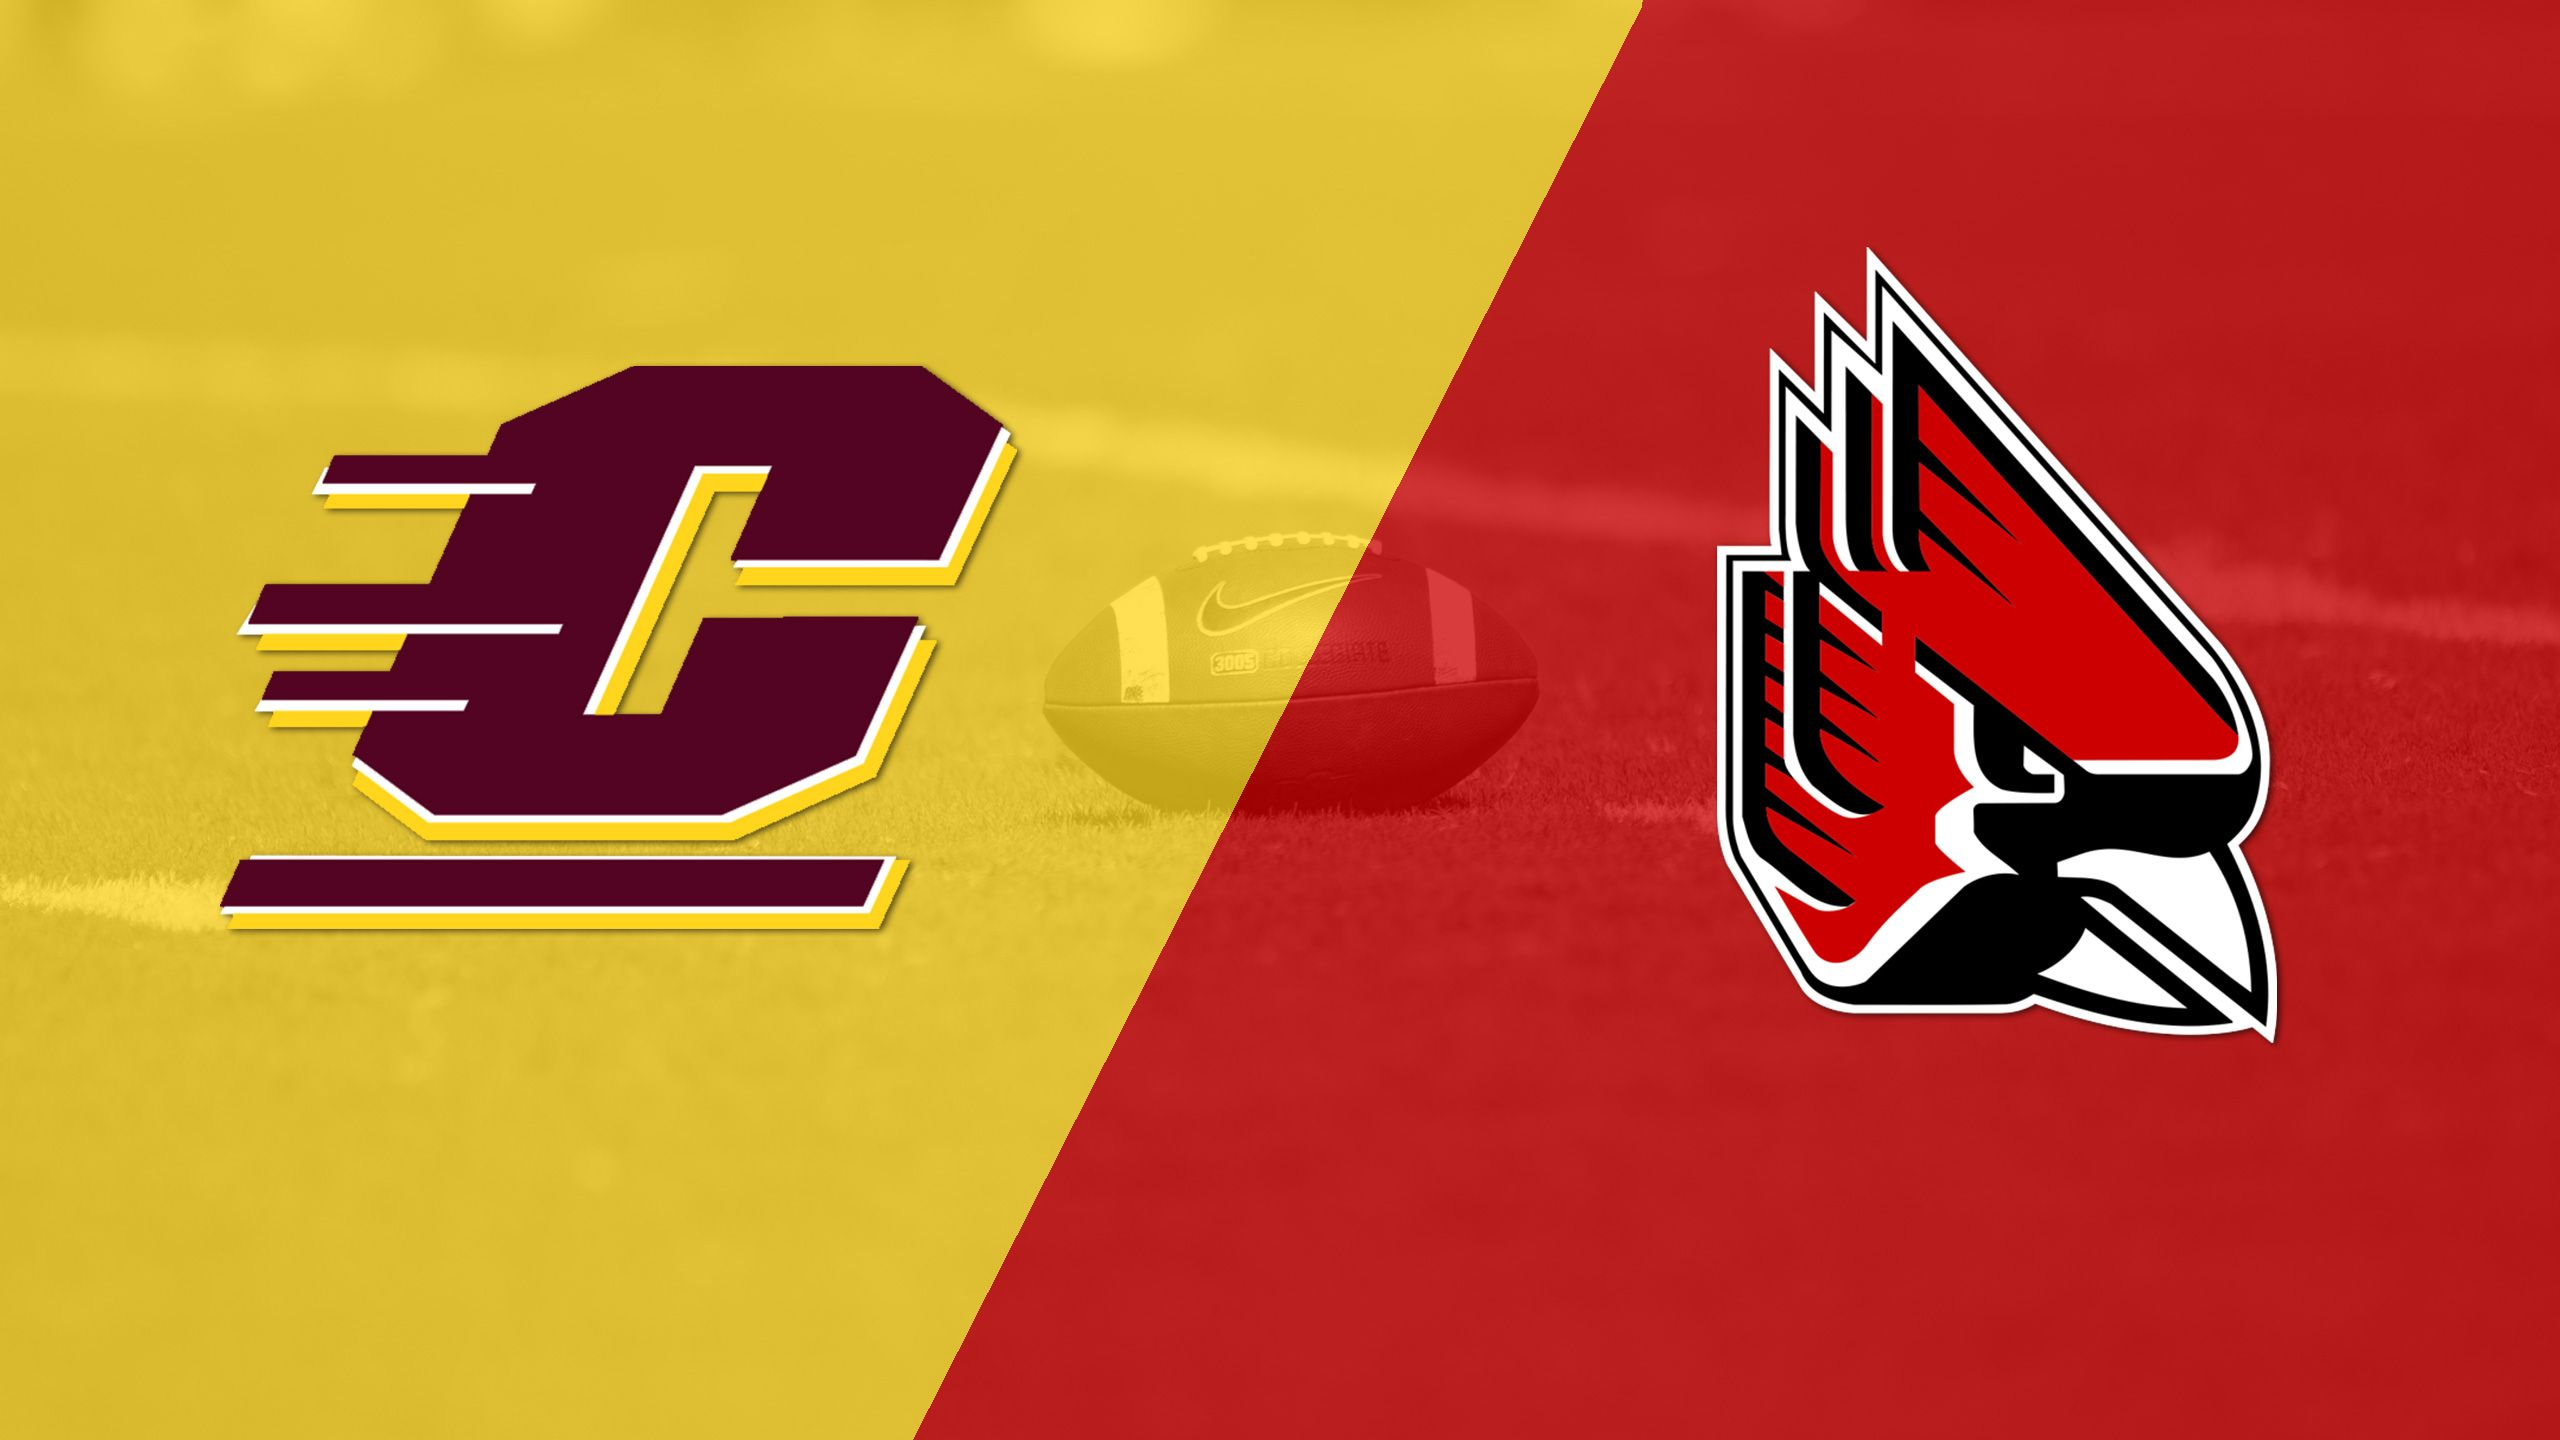 Central Michigan vs. Ball State (Football)